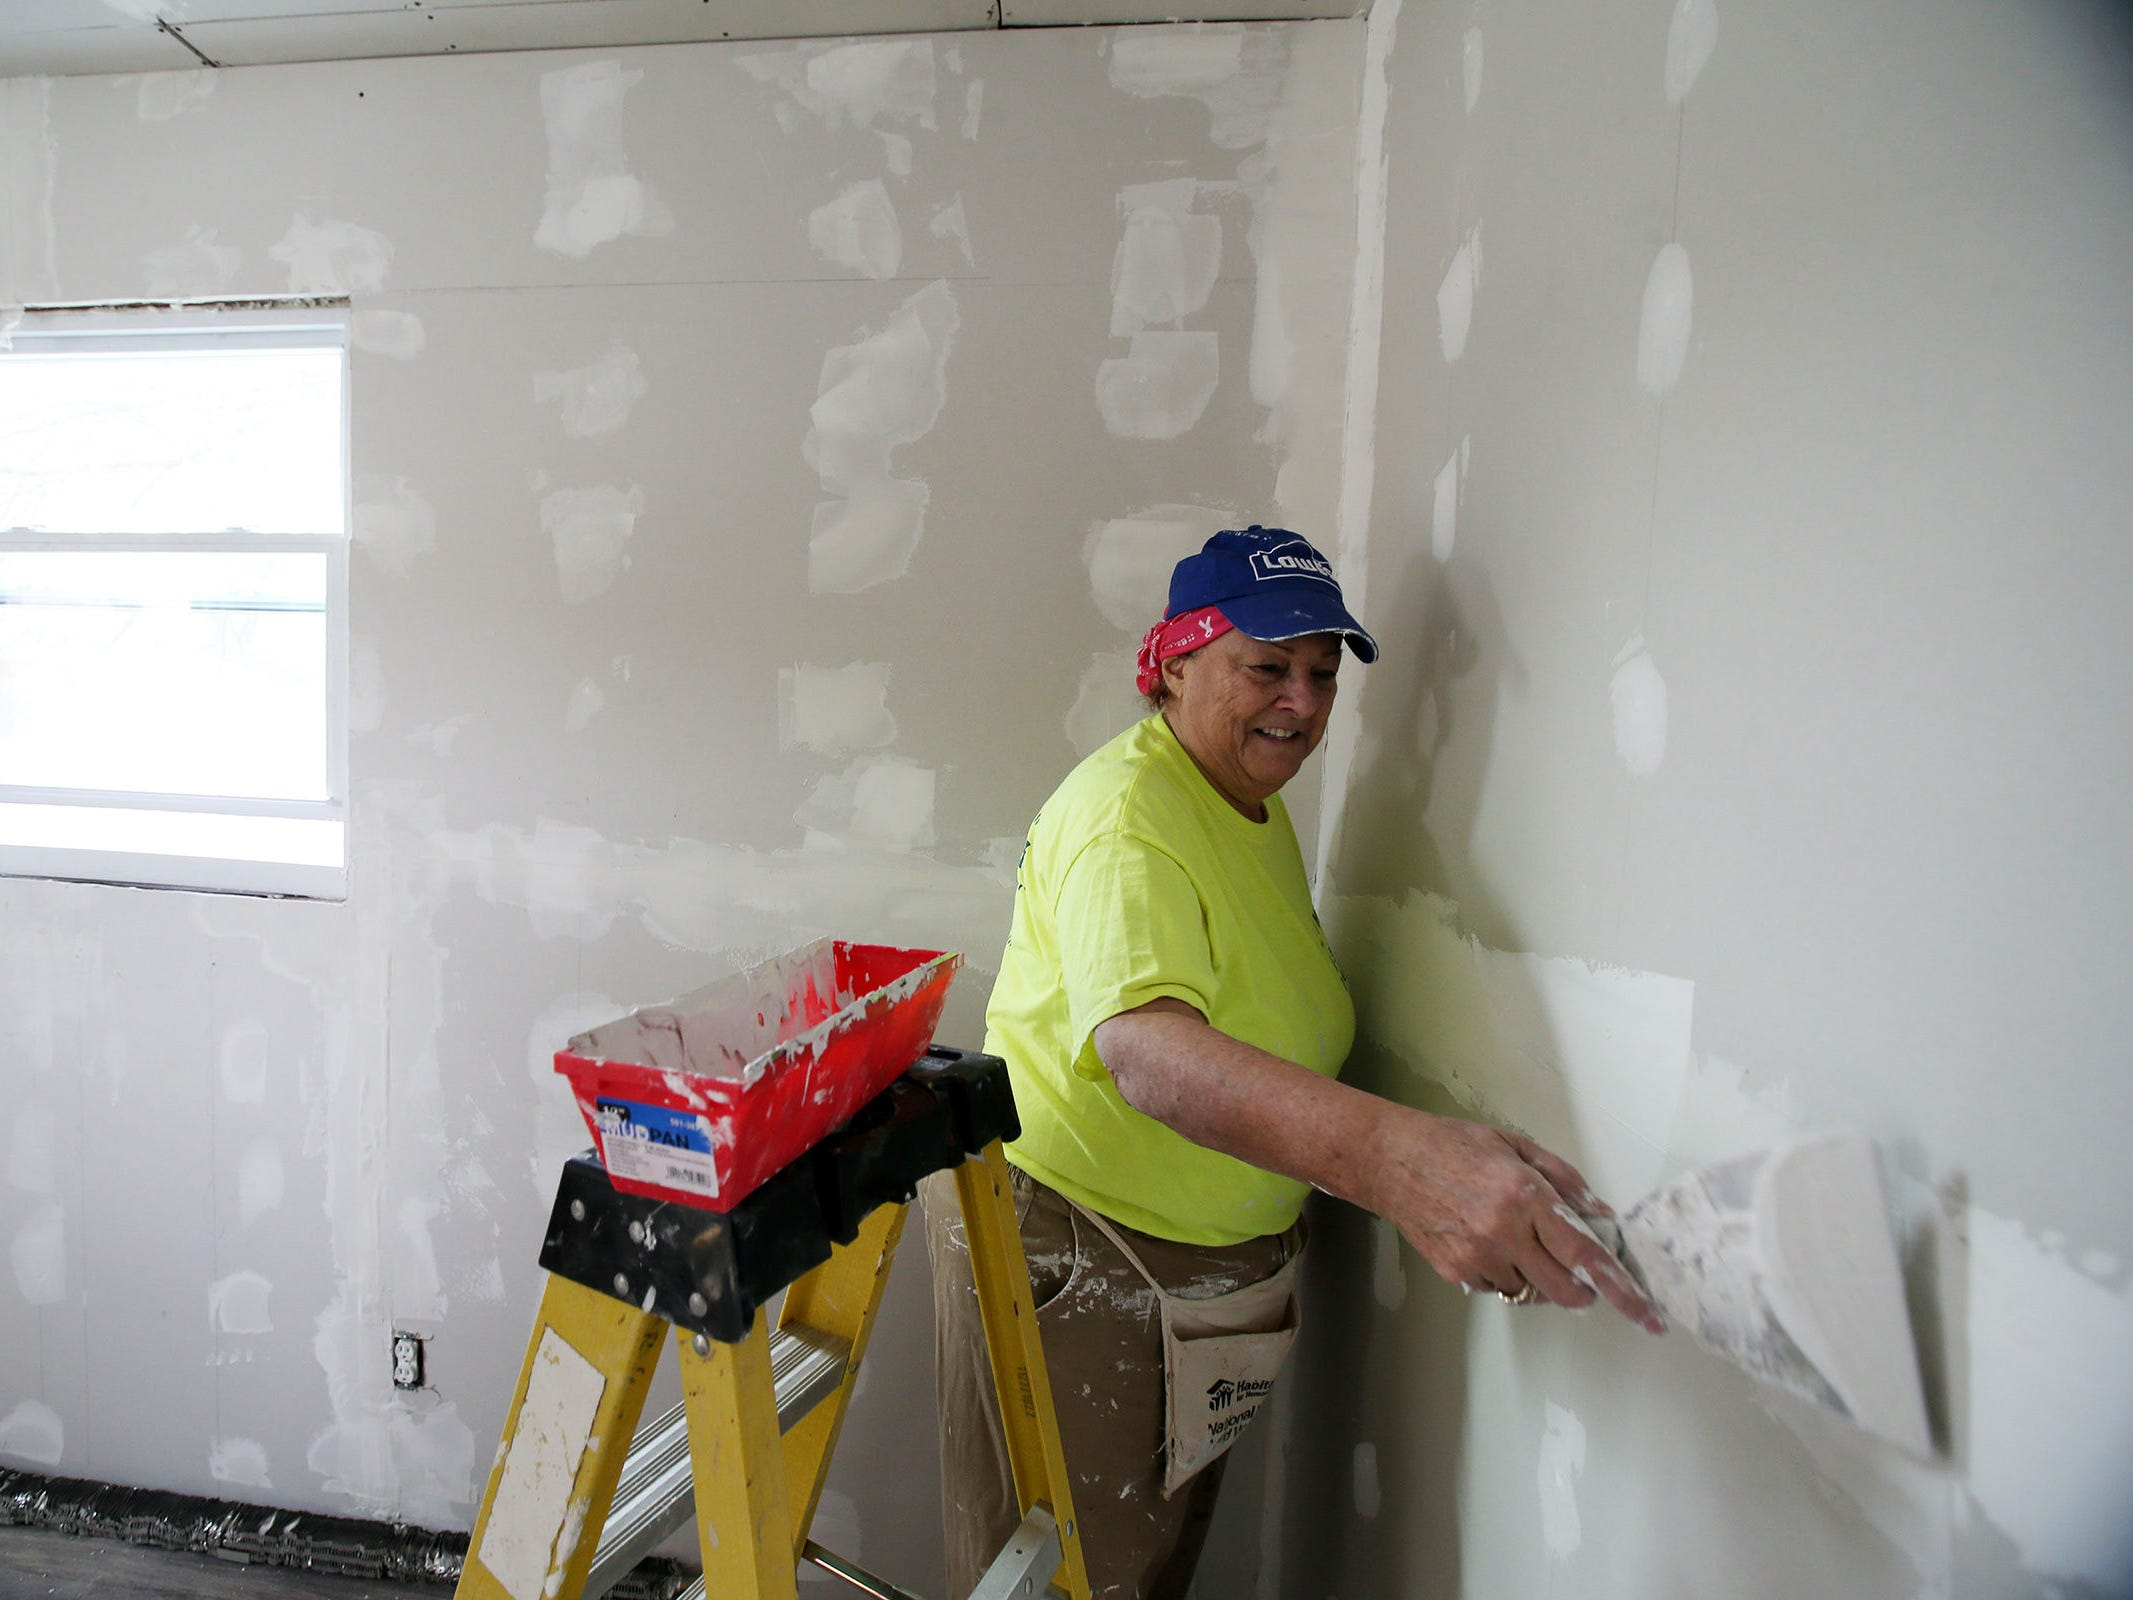 Gerry Pizzi of Toms River, a volunteer for Northern Ocean Habitat for Humanity, works on the home of Korean War veteran Walter Brandon, 85, and wife Patricia in Brick, NJ Thursday, December 6, 2018.  This is Northern Ocean Habitat for Humanity's 200th home repair.